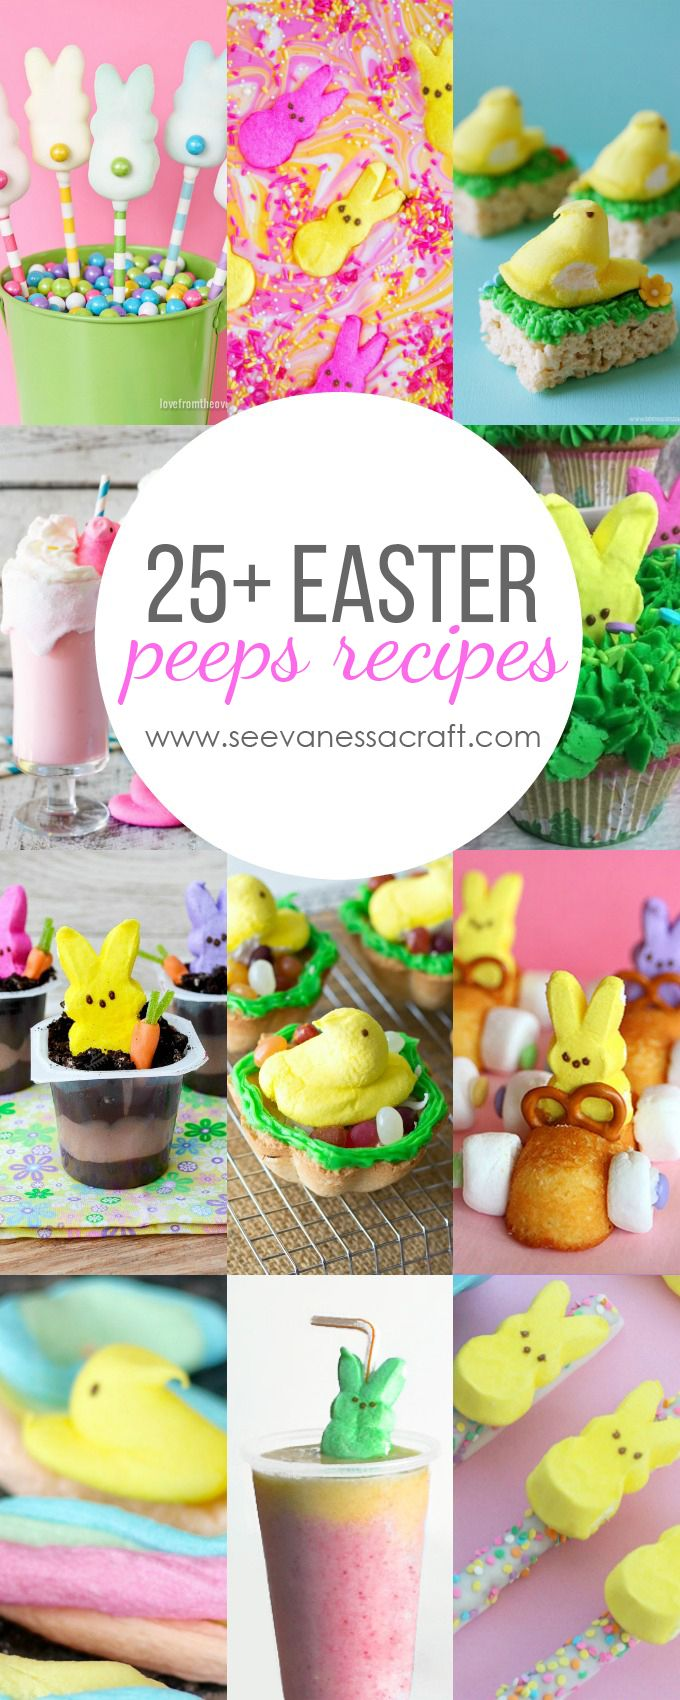 Easter 25 marshmallow peeps recipes cocina vegetariana for Cocina vegetariana